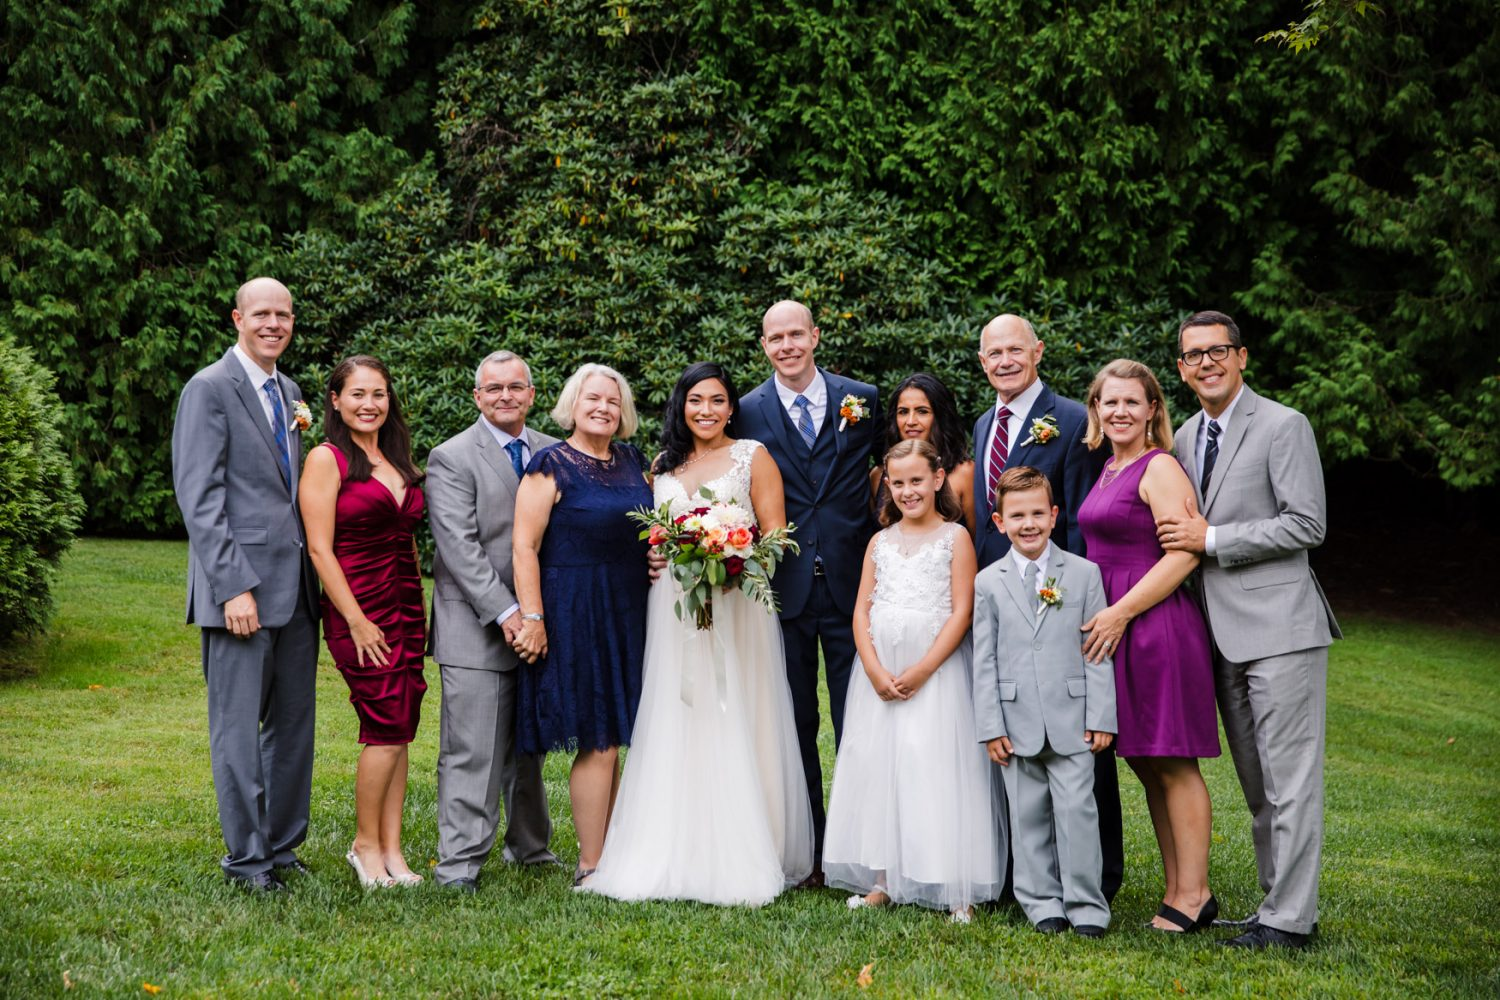 Family Portrait Waynesville NC Wedding Photography Inn at Tranquility Farm